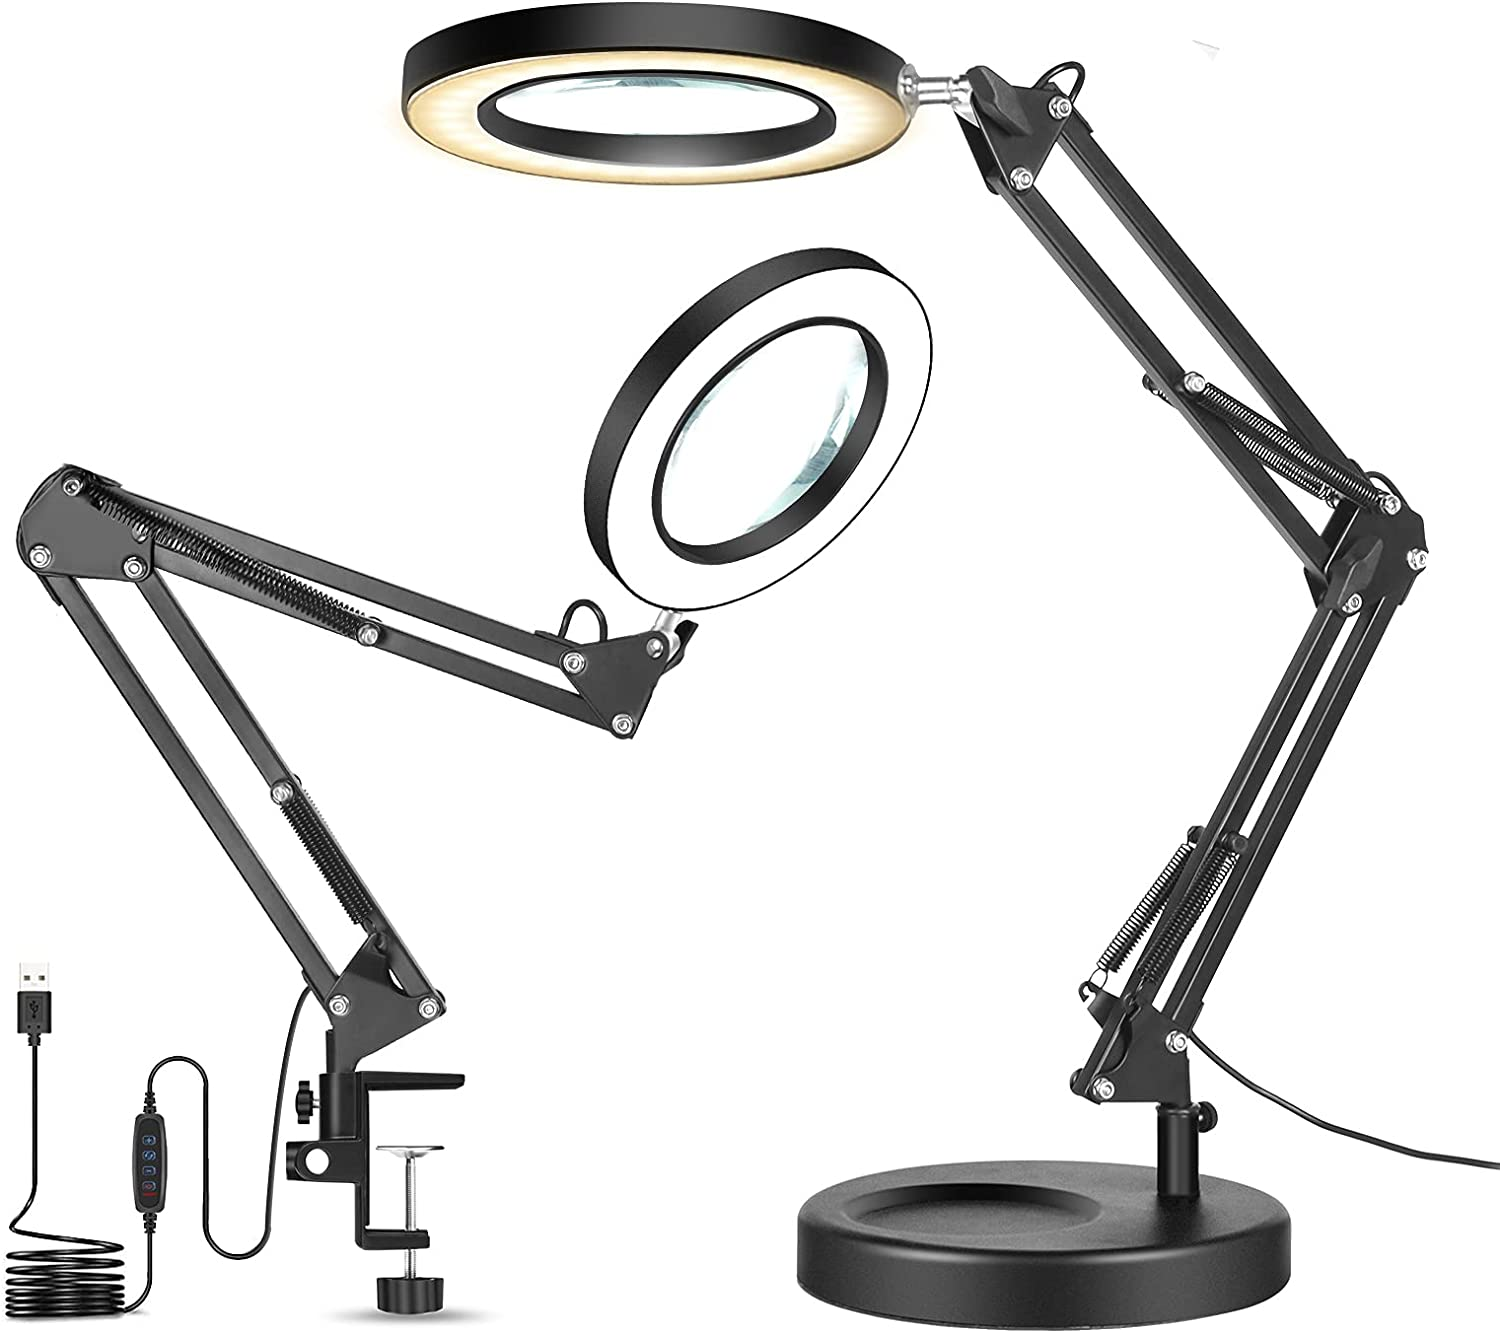 Omaha Seasonal Wrap Introduction Mall Magnifying Desk Lamp with Clamp 2-in-1 Daylight Dimmable Bright